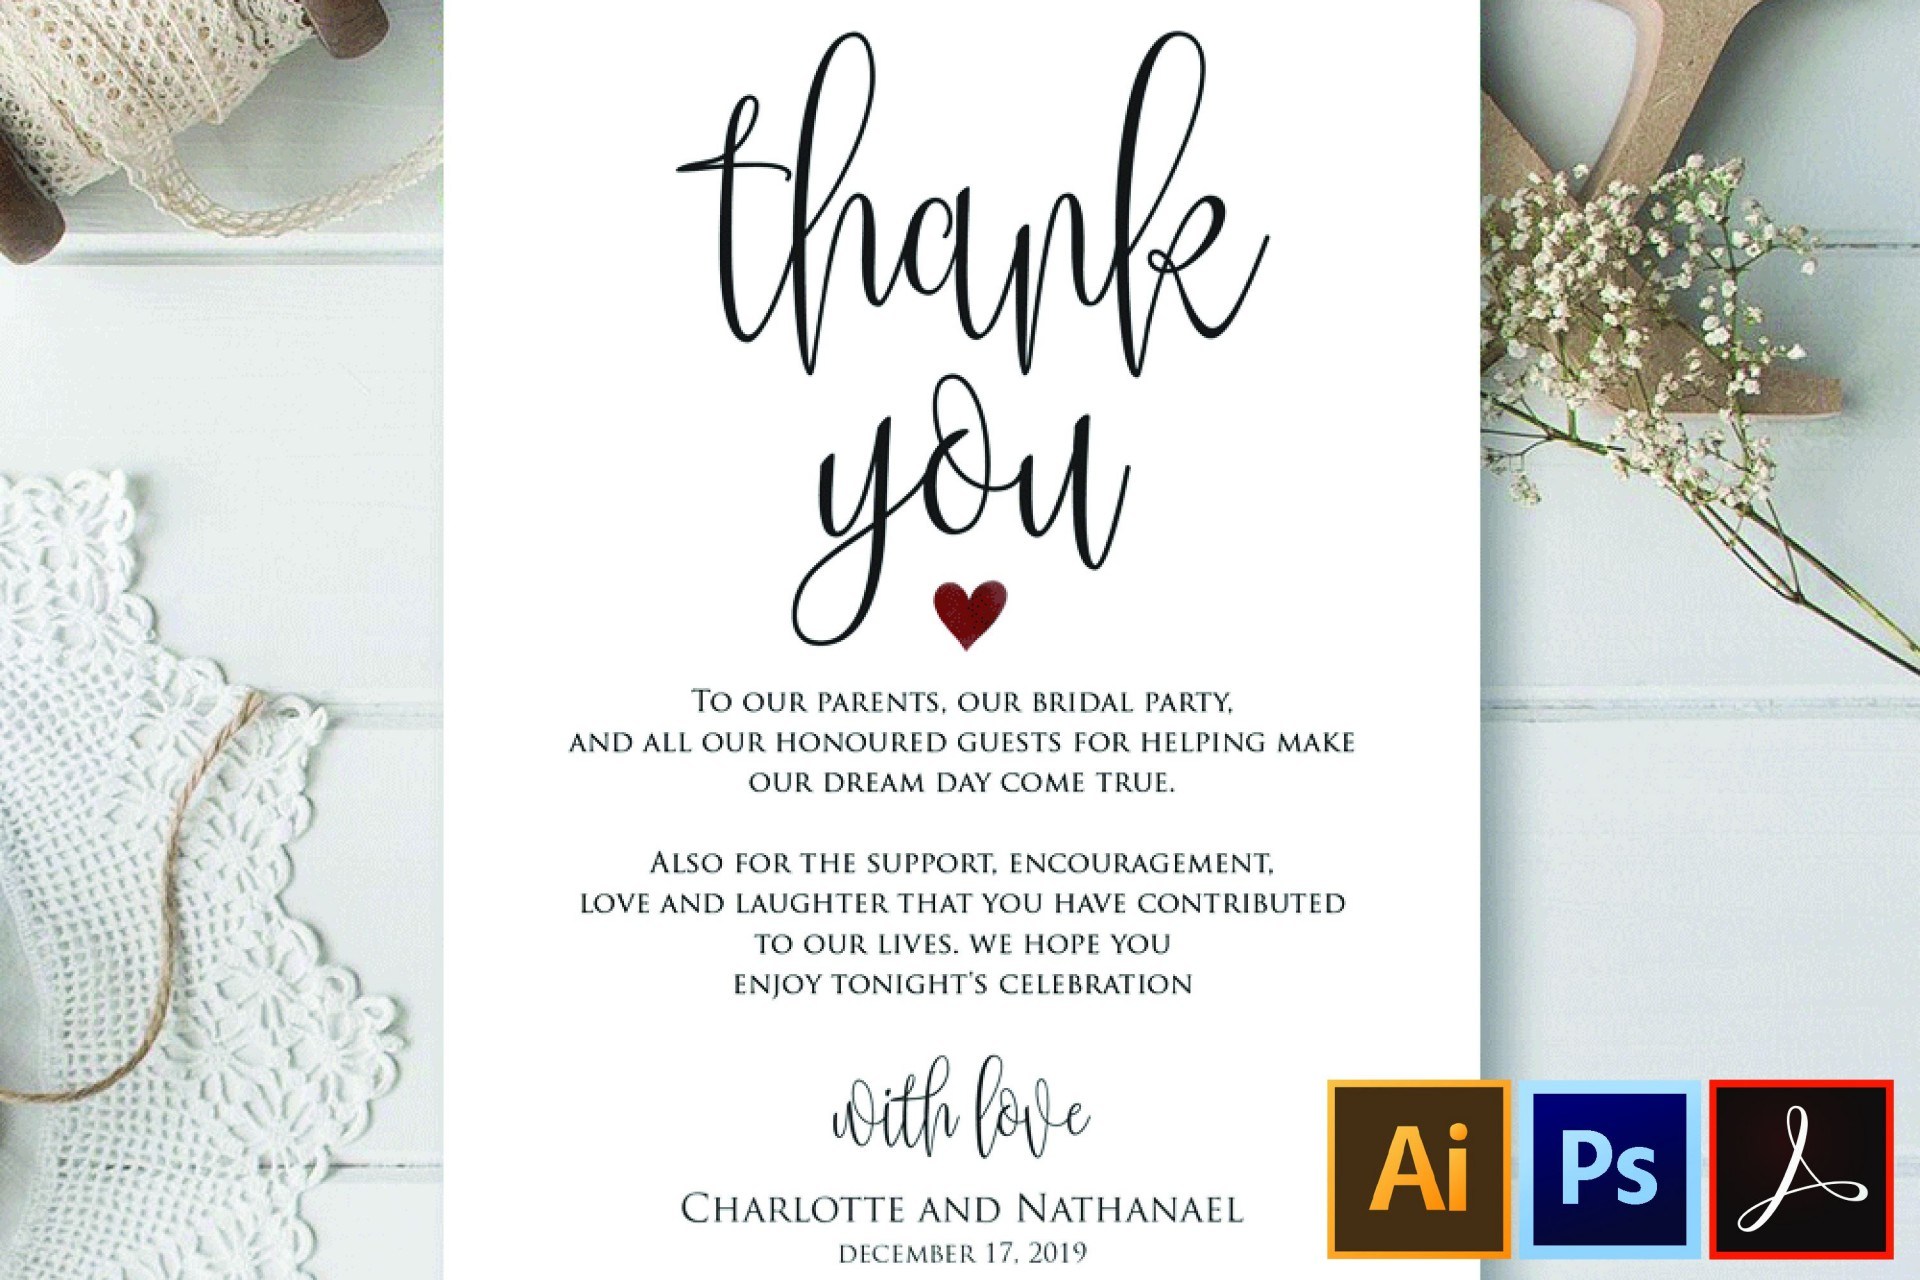 005 Impressive Wedding Thank You Note Template High Resolution  Templates Shower Card Etsy Bridal Format1920